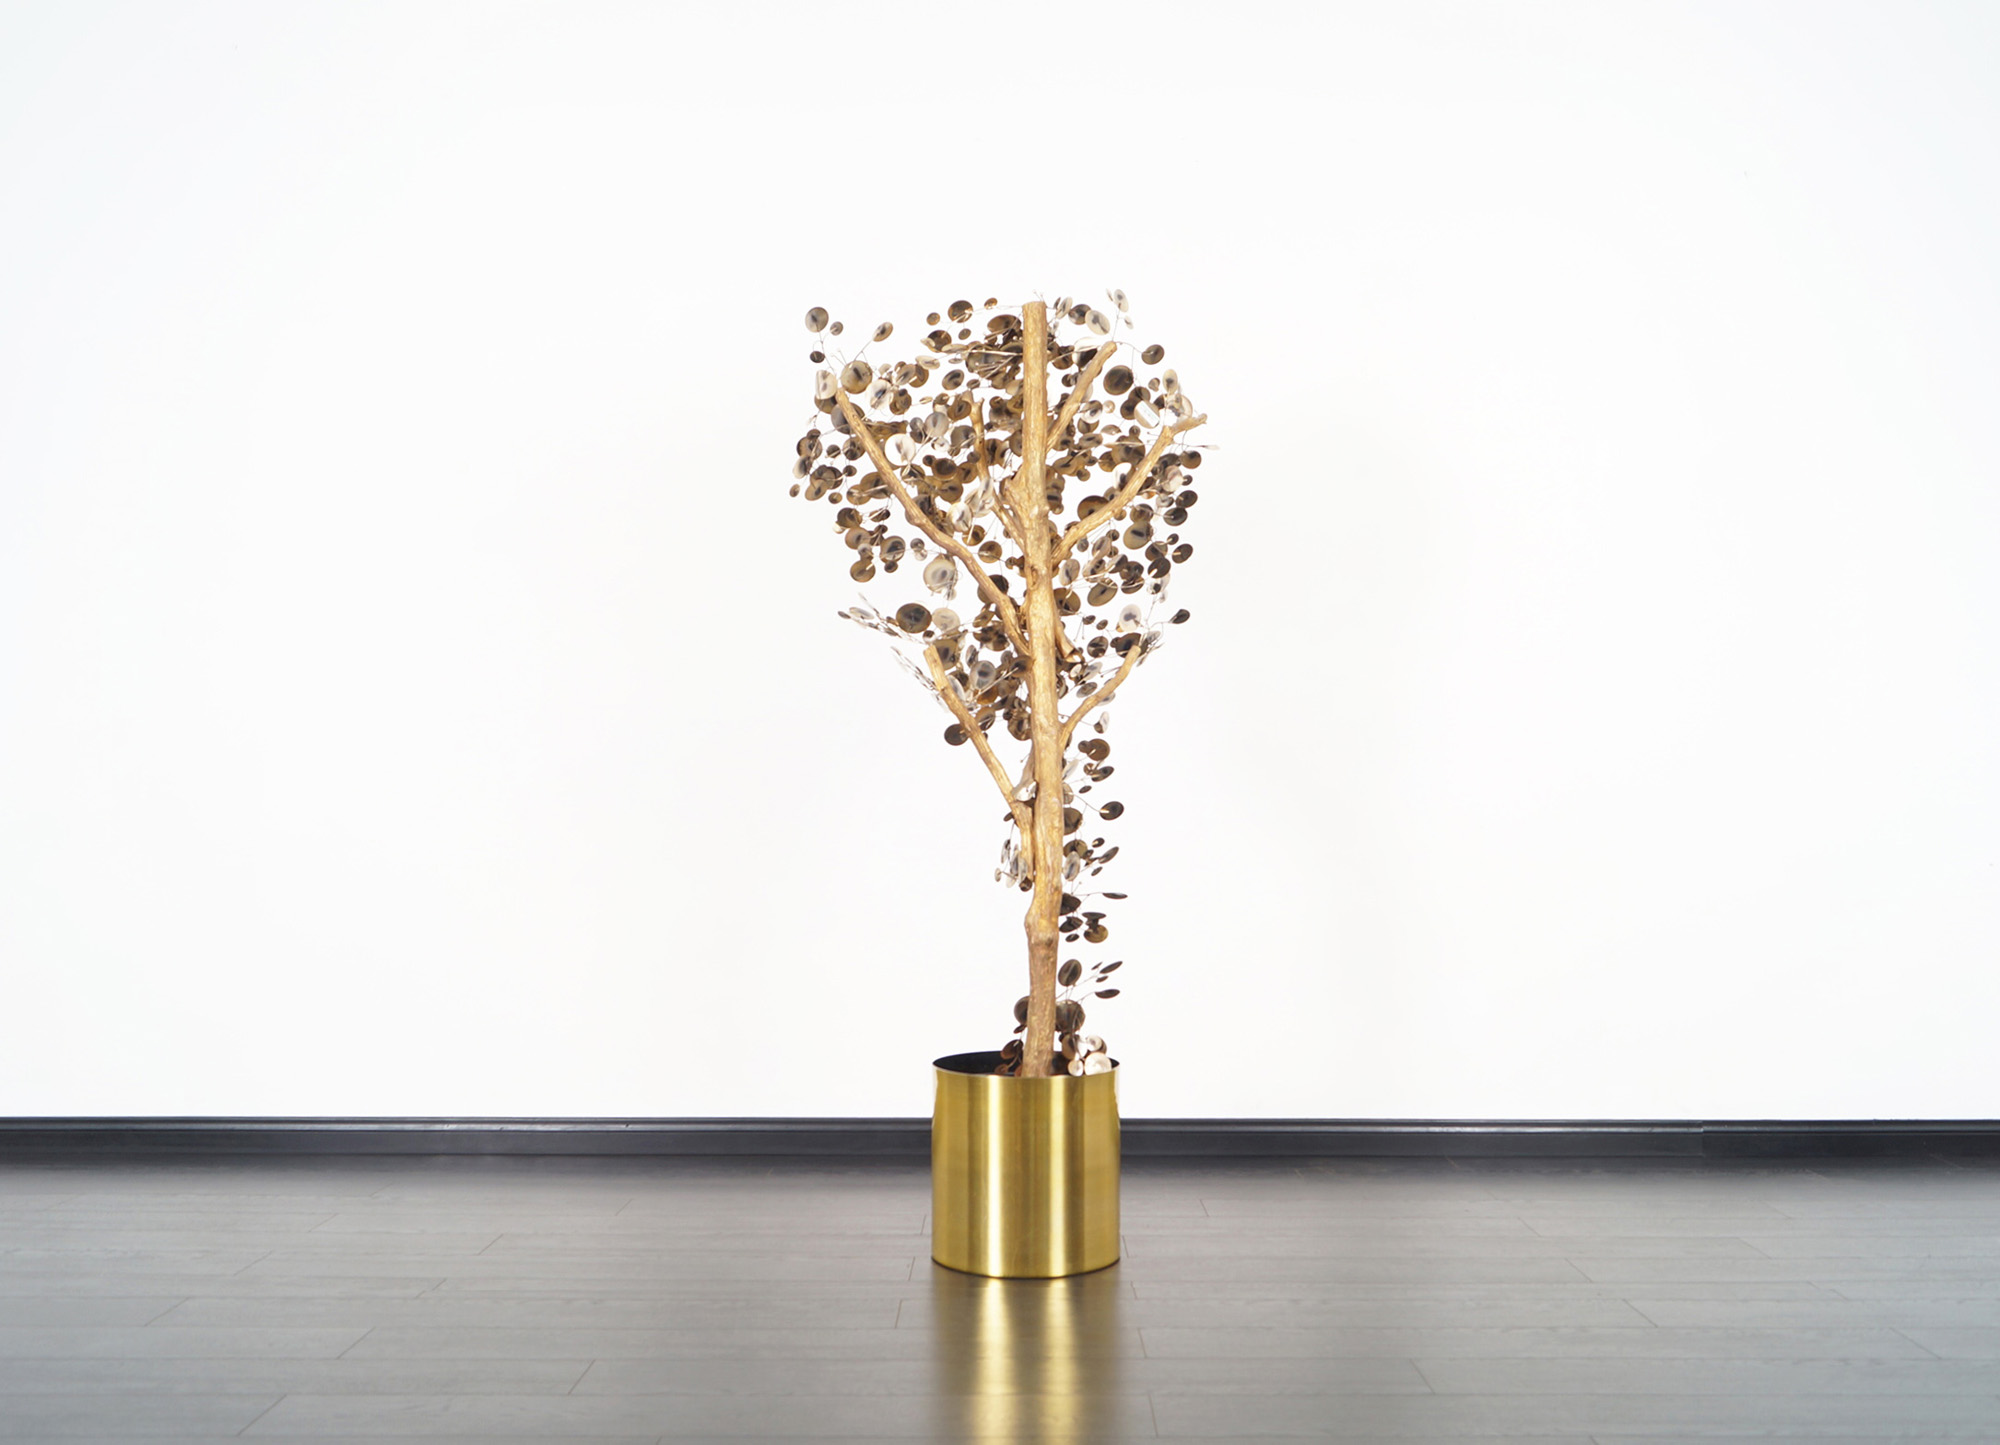 Vintage Raindrops Tree Sculpture by Curtis Jere